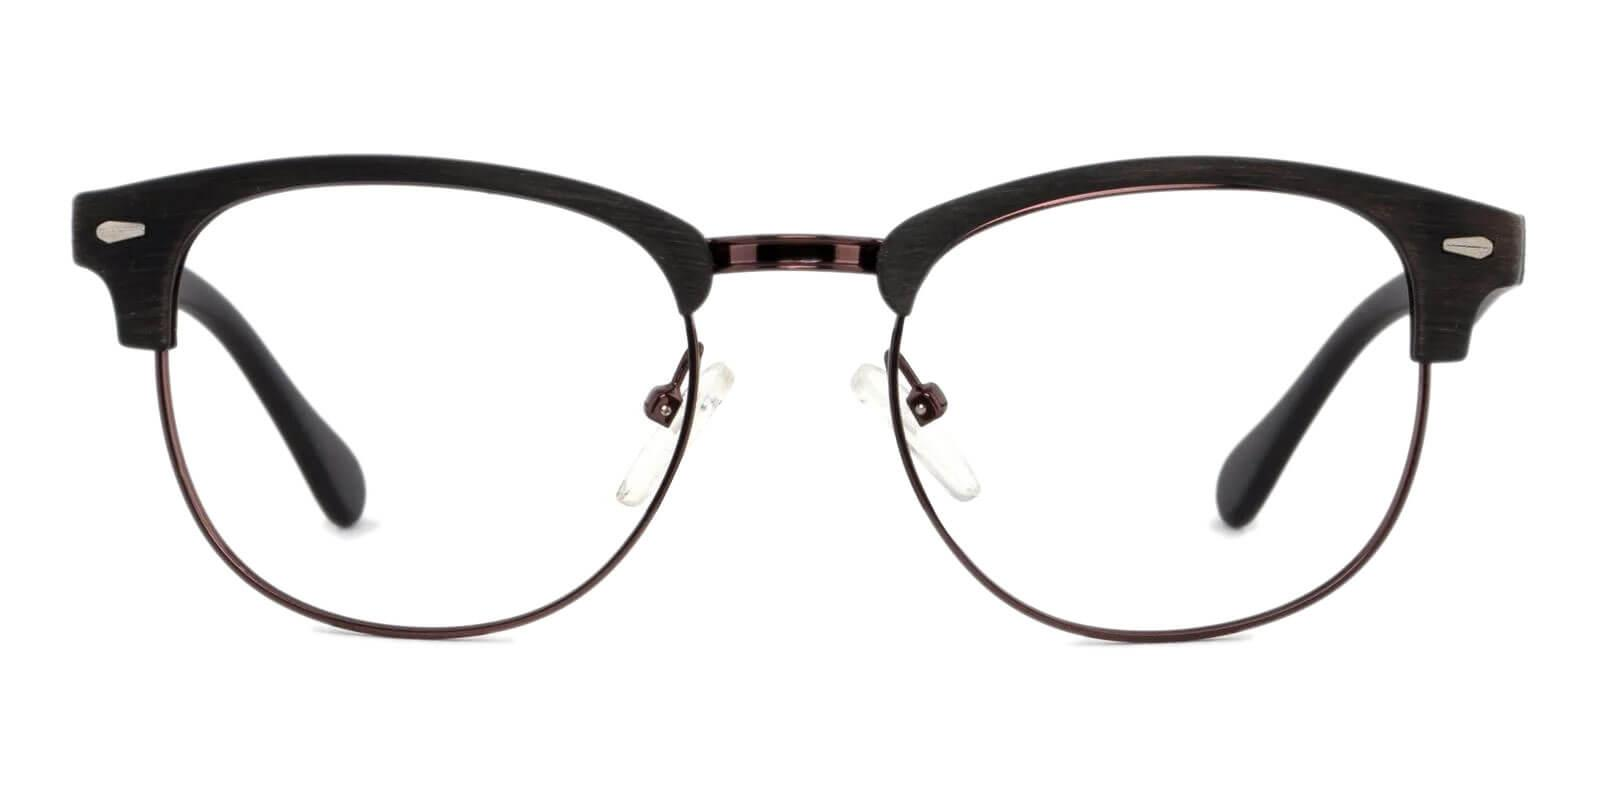 Chad Gun Metal , Combination , Plastic Eyeglasses , NosePads Frames from ABBE Glasses